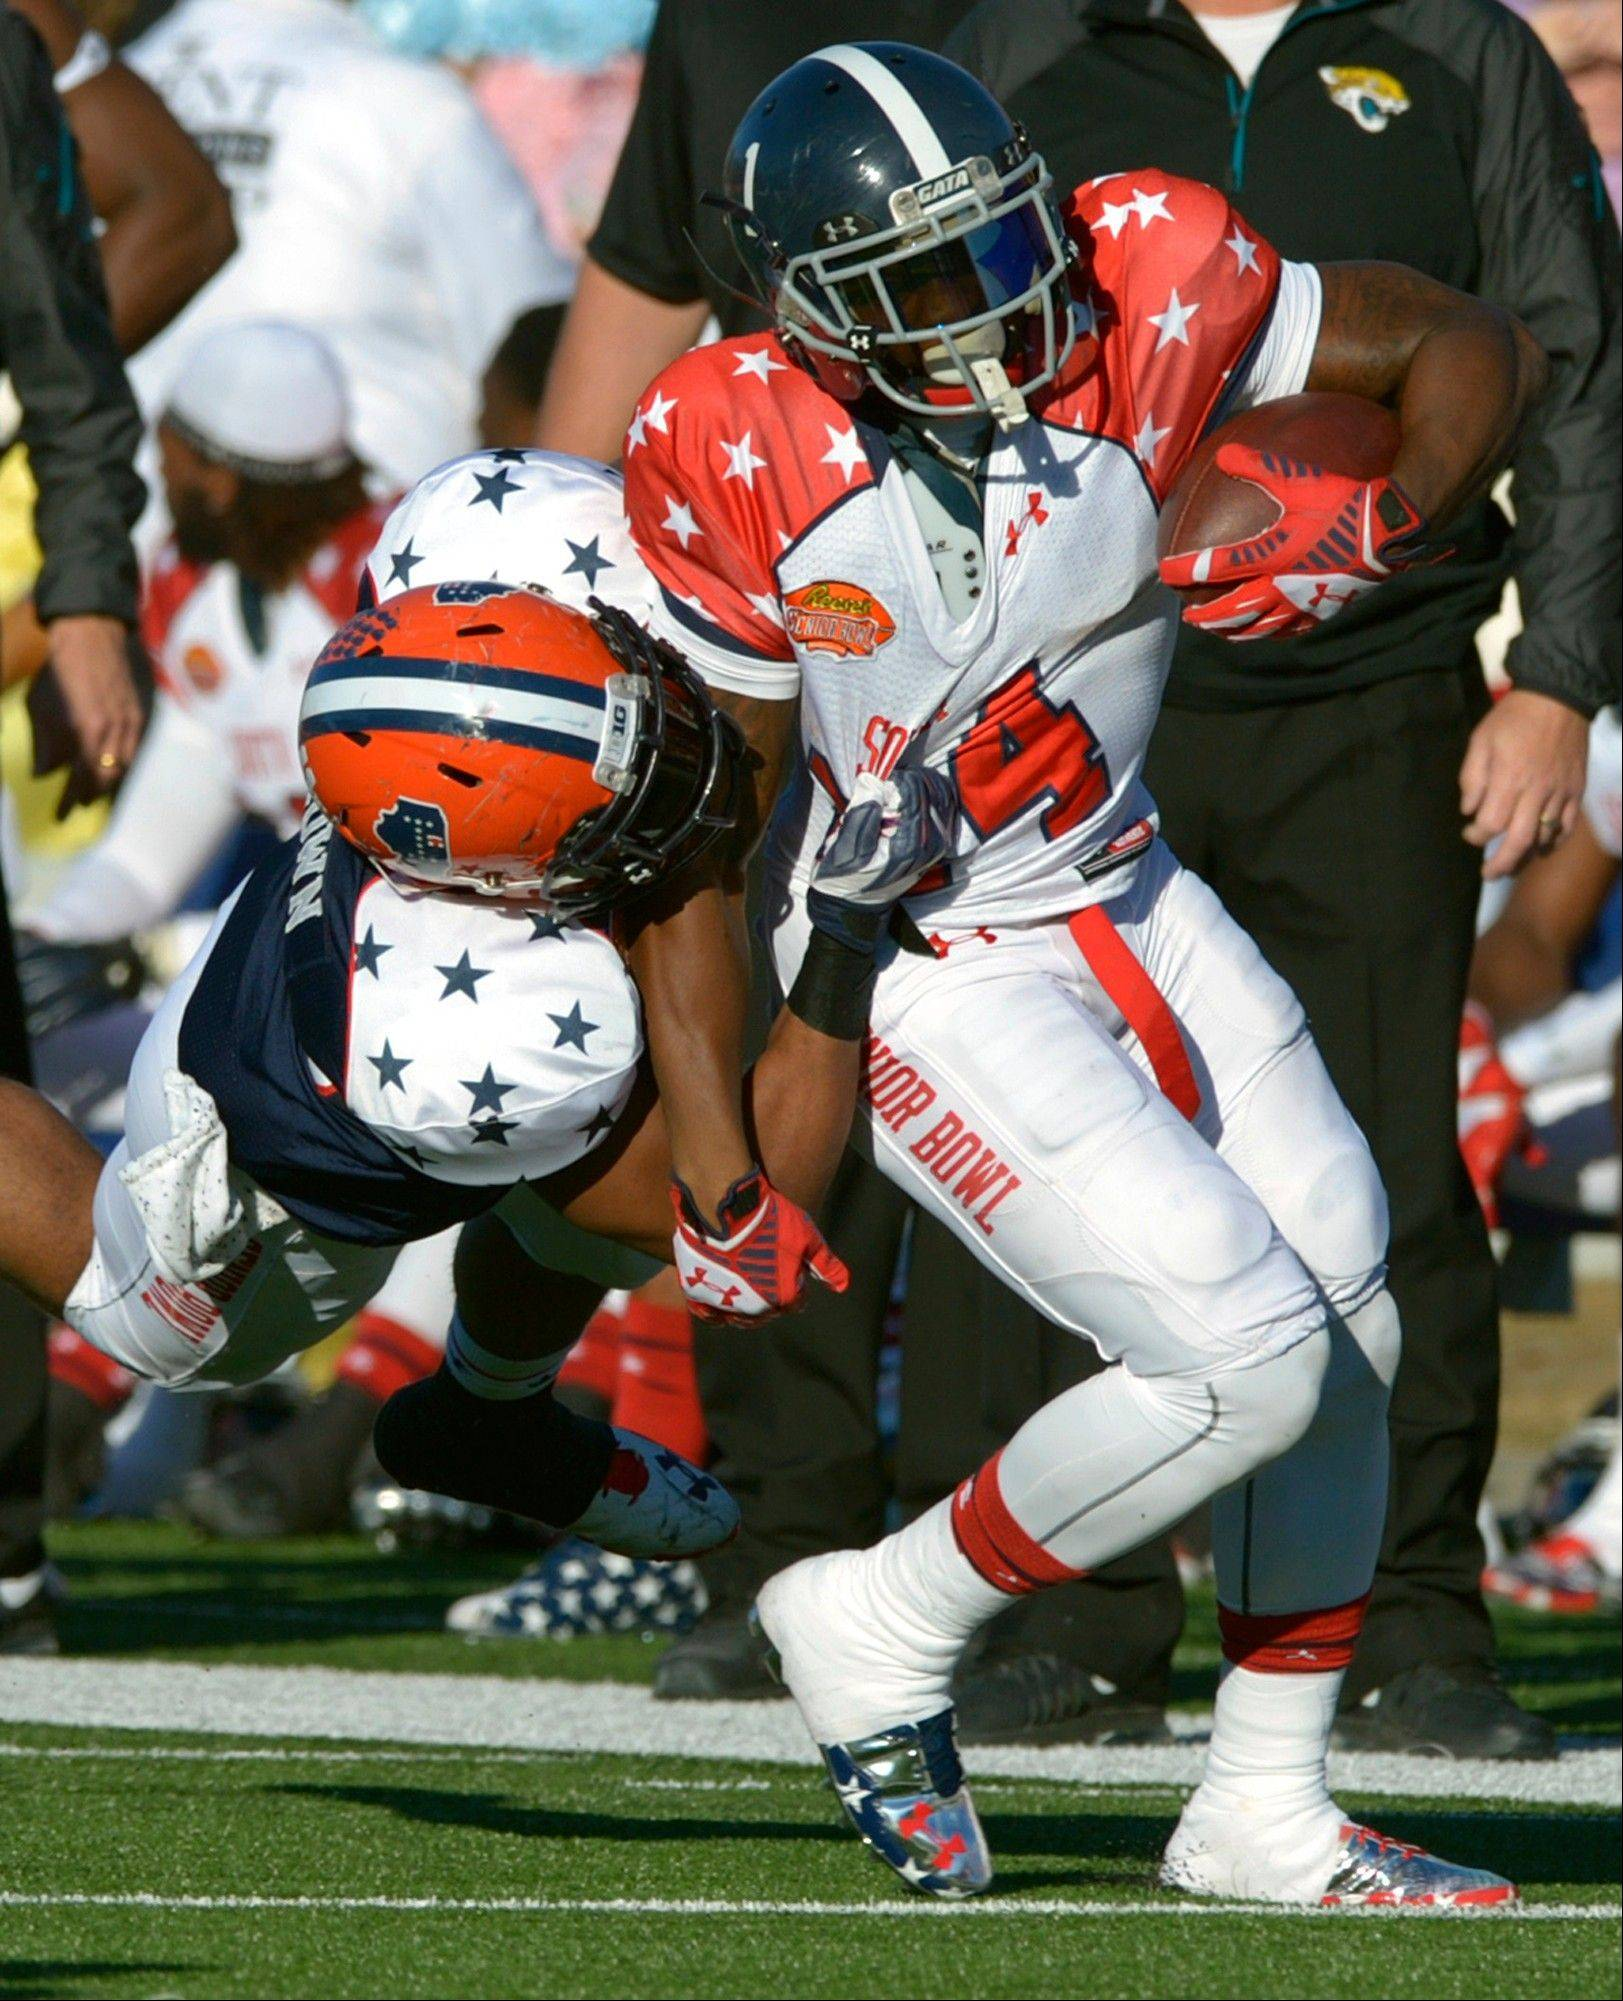 North outside linebacker Jonathan Brown, left, of Illinois, tackles South running back Jerick McKinnon, of Georgia Southern, during the second quarter of the Senior Bowl NCAA college football game on Saturday, Jan. 25, 2014, in Mobile, Ala.